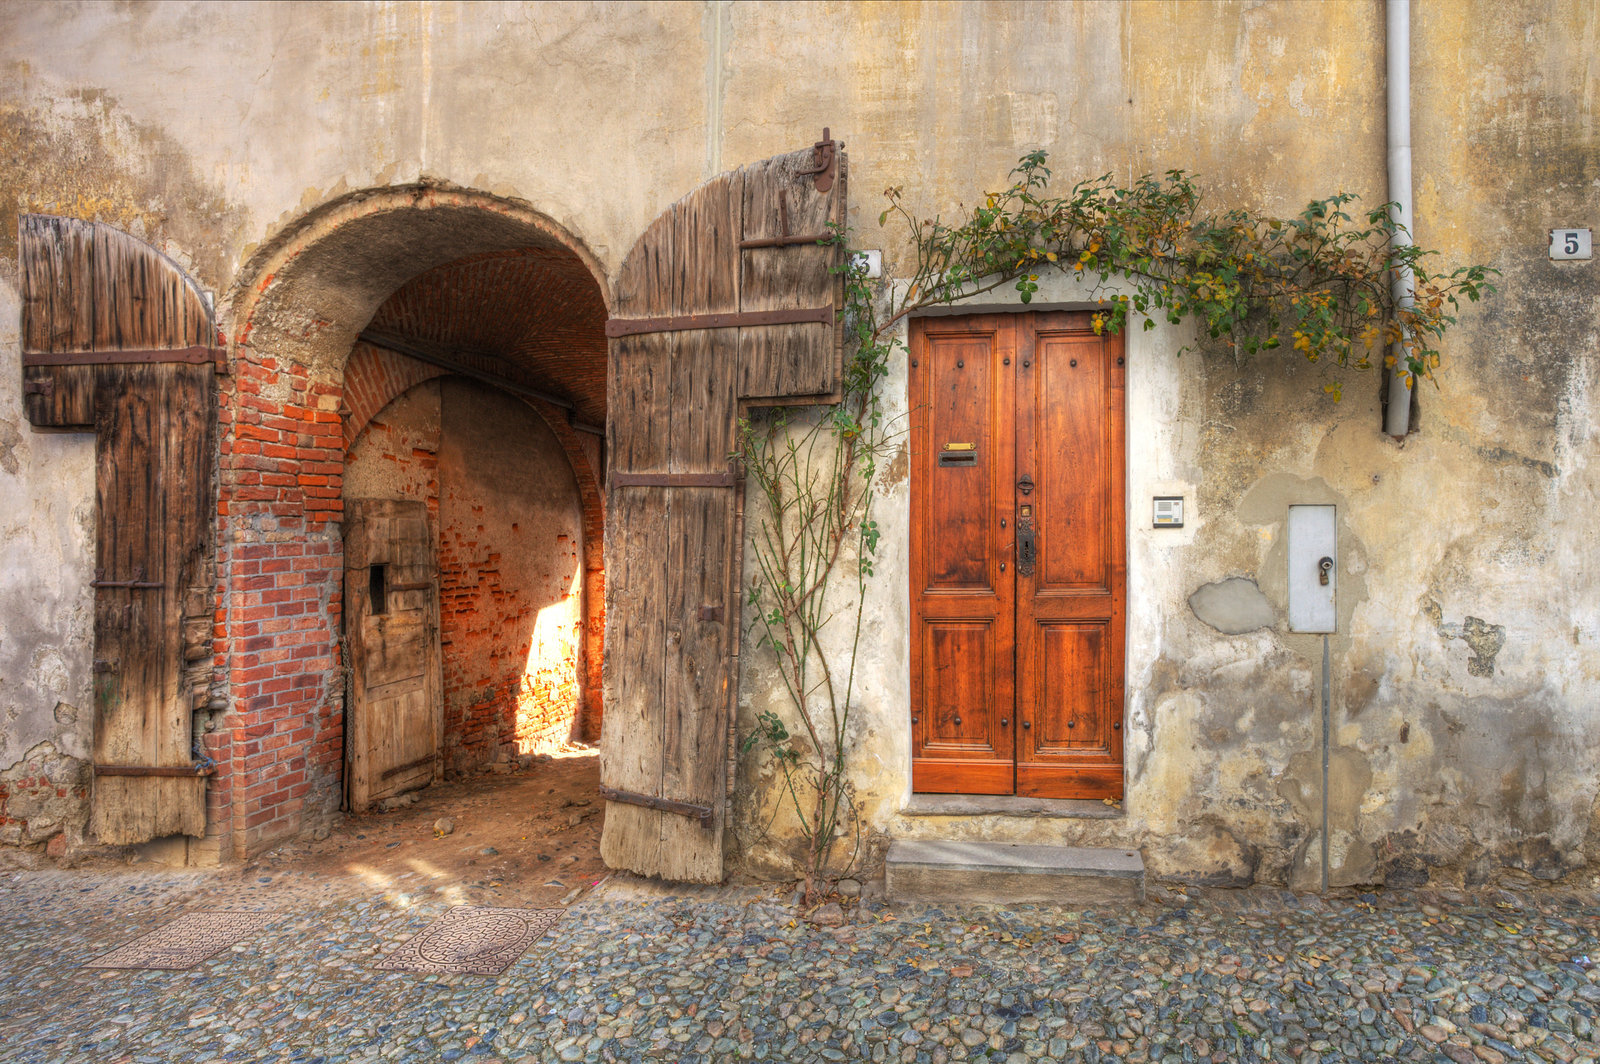 Wooden door and gate entrance to garage in old brick house in town of Saluzzo